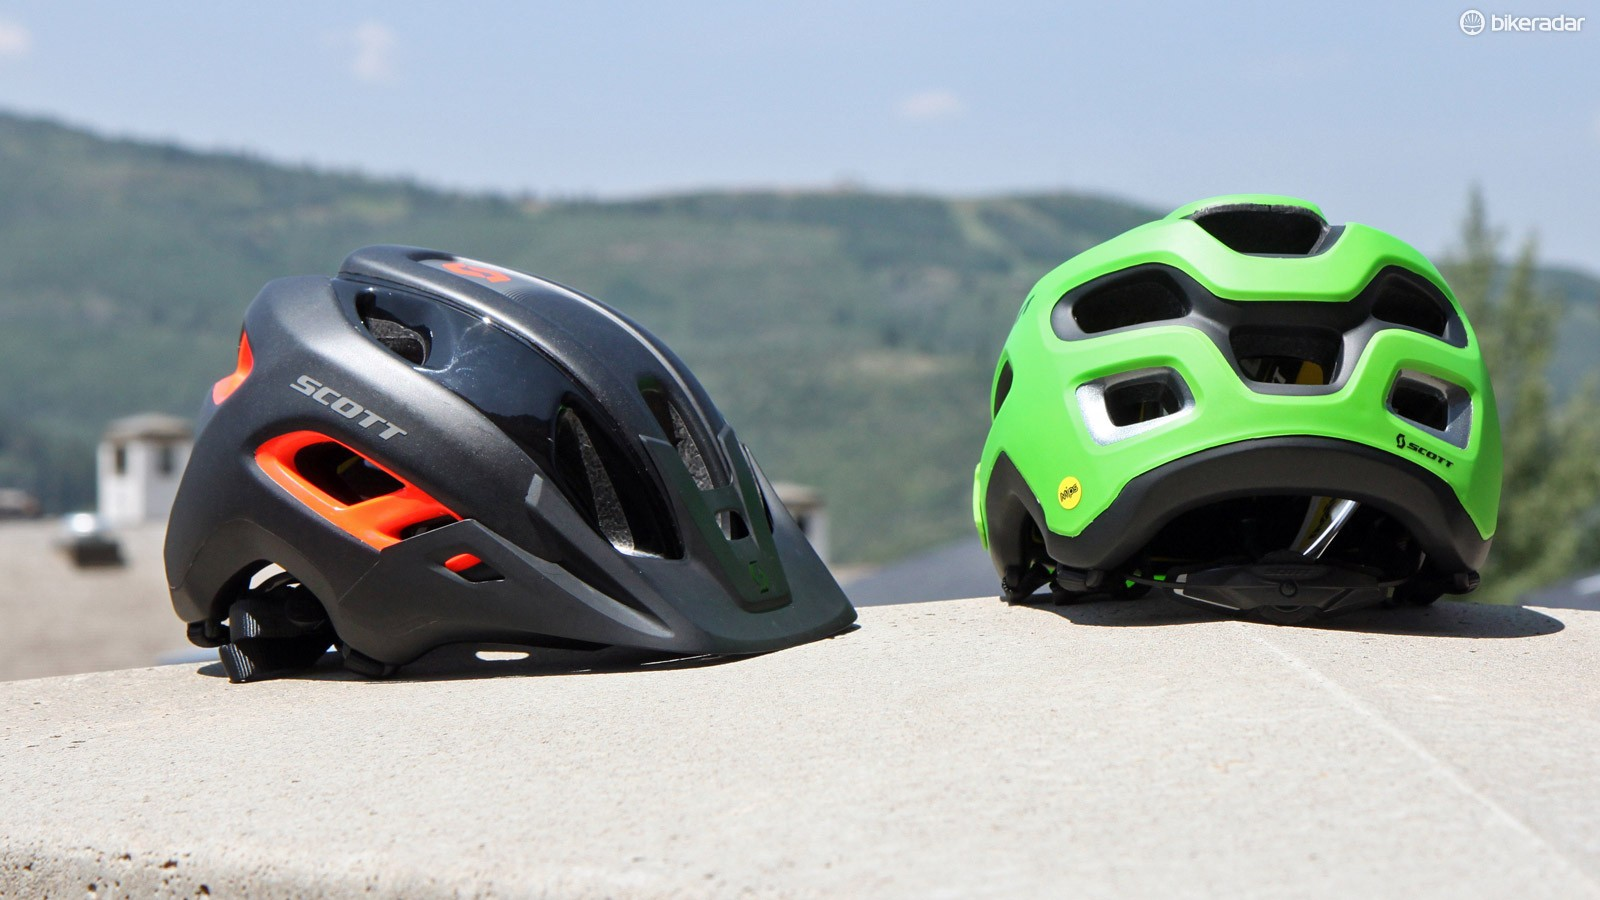 Scott will feature MIPS (Multi-dimensional Impact Protection System) heavily in its helmet range for 2015. Headlining the mountain bike collection is the enduro-focused Stego with generous side and rear coverage